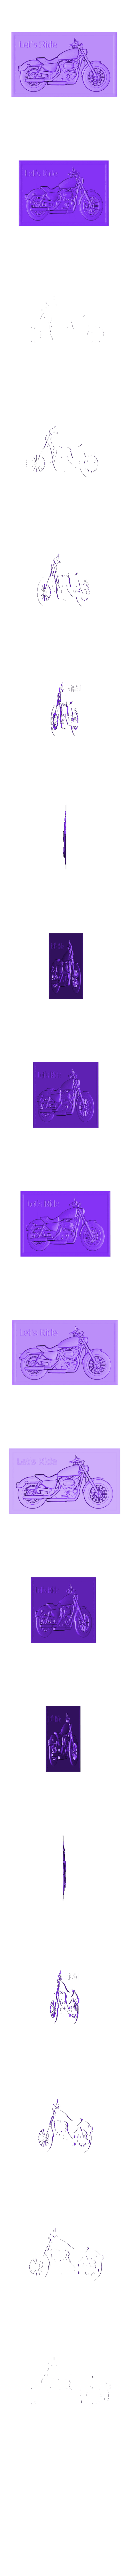 Ride.stl Download free STL file Motorcycle • 3D printing object, Account-Closed